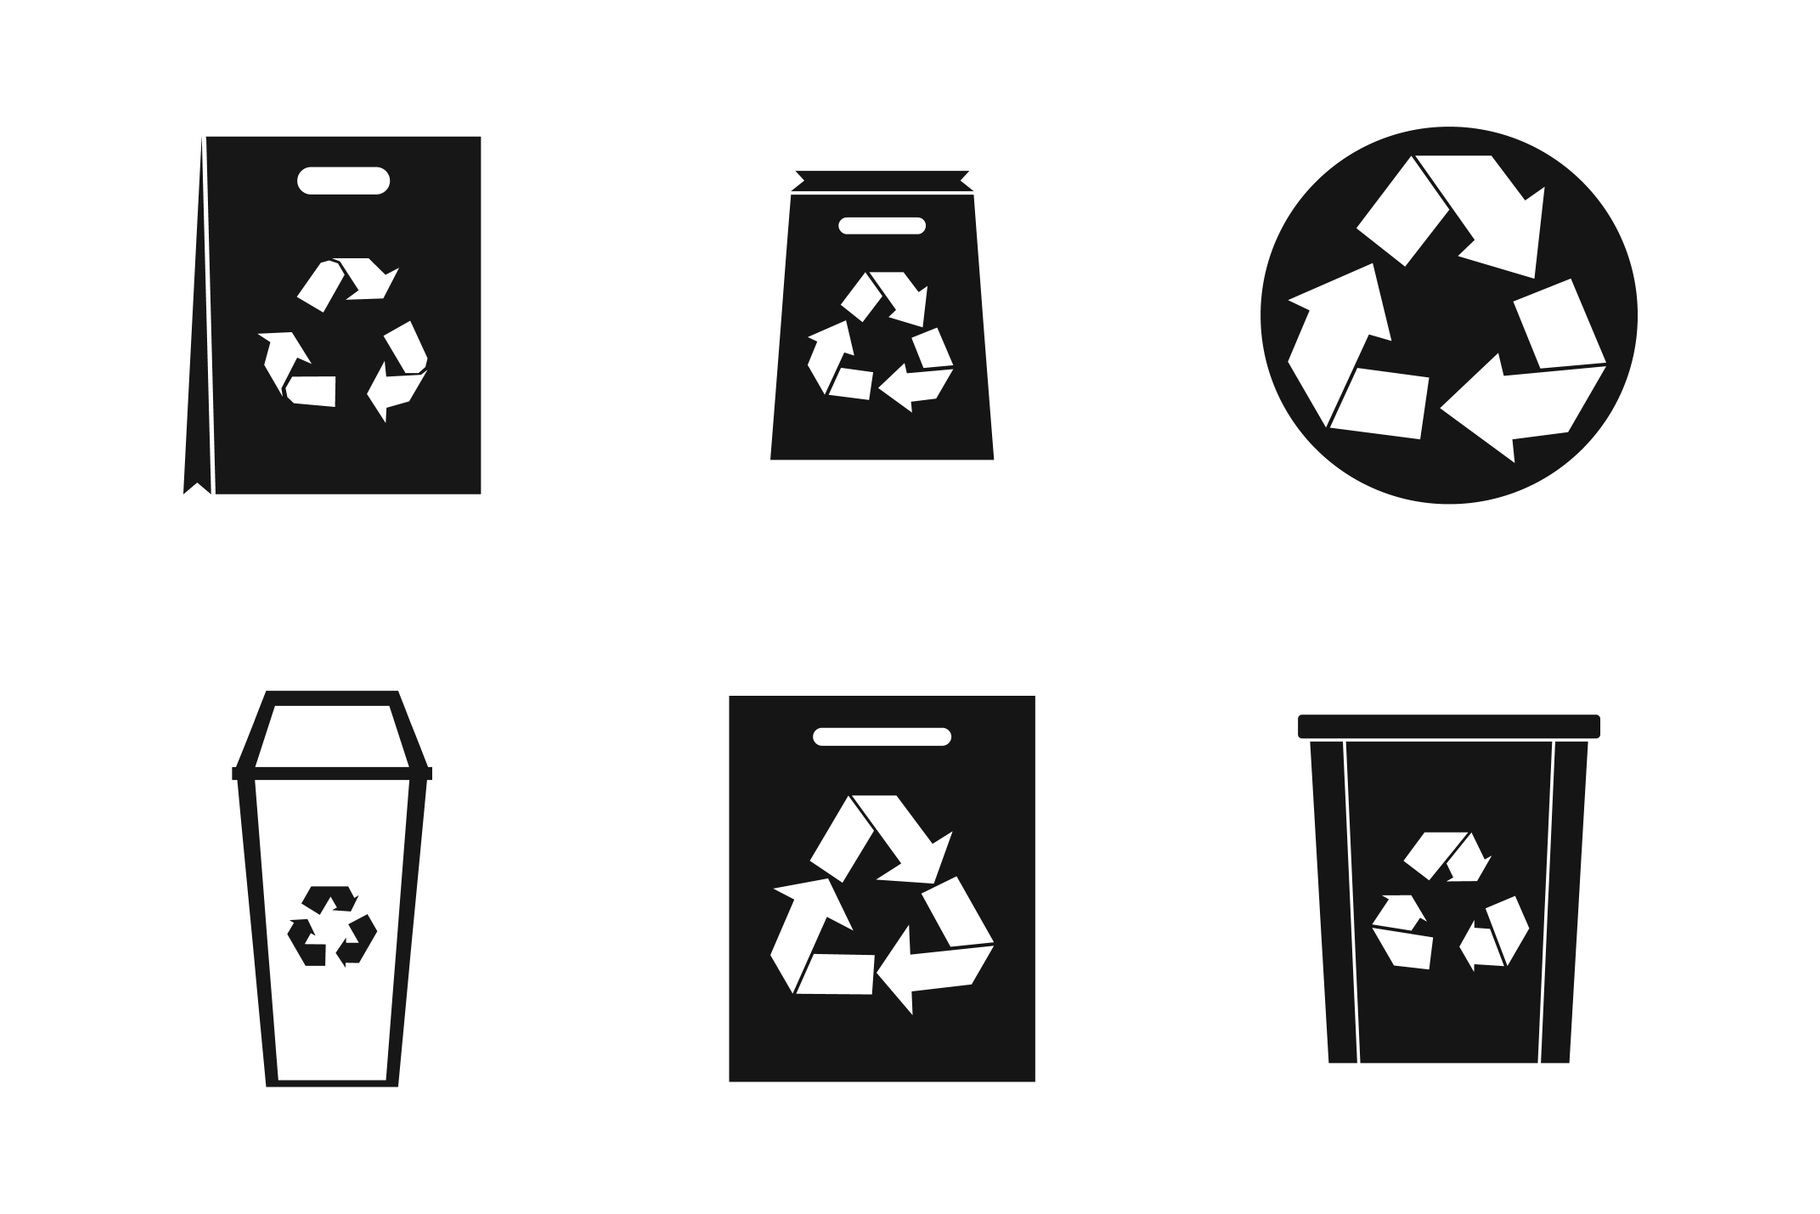 Recycle material icon set, simple style example image 1